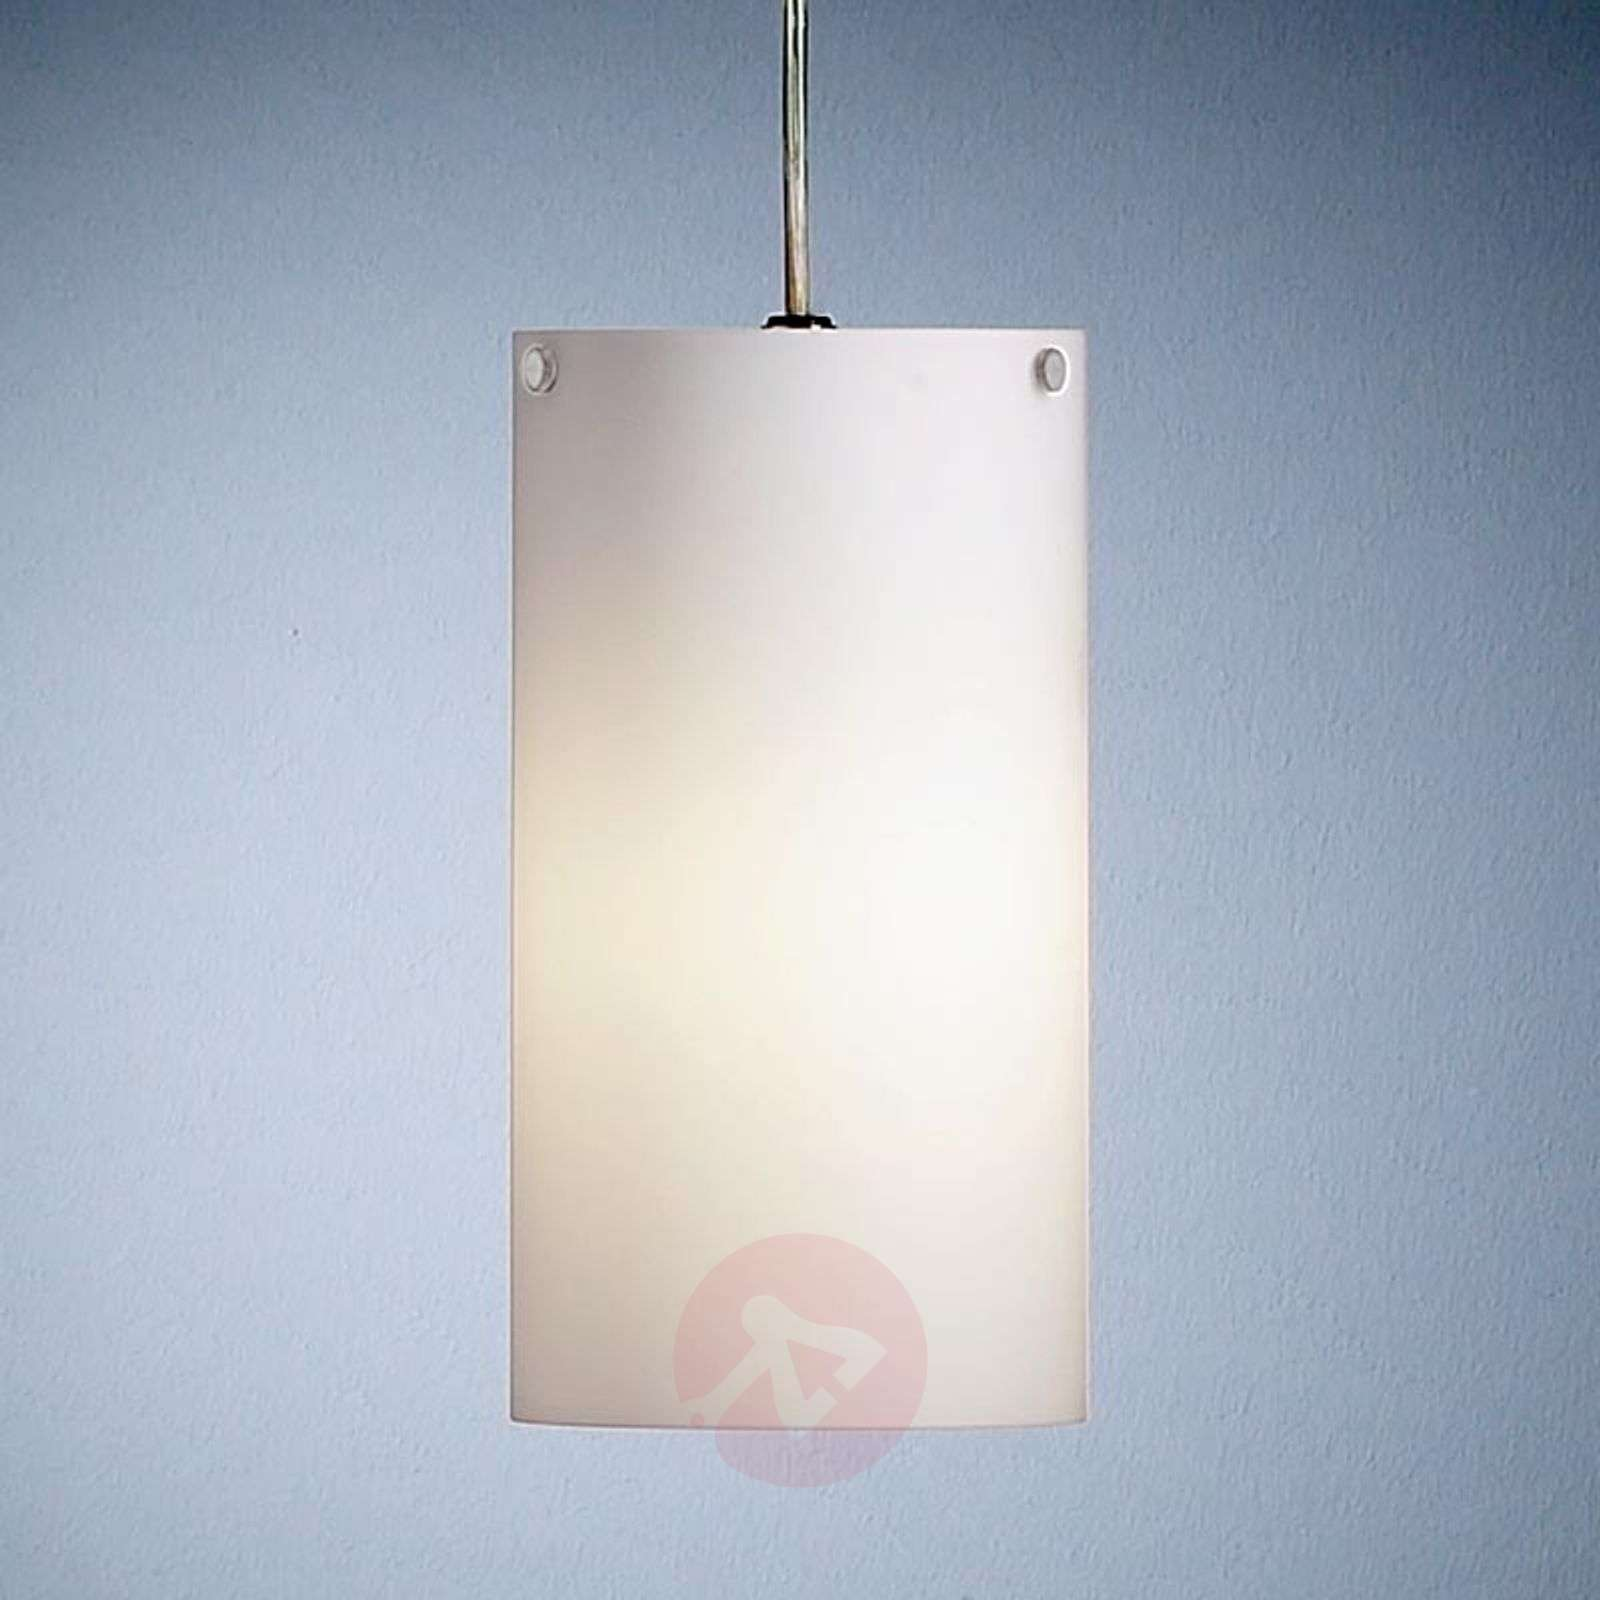 Cylindrical hanging light by Walter Schnepel-9030032-01